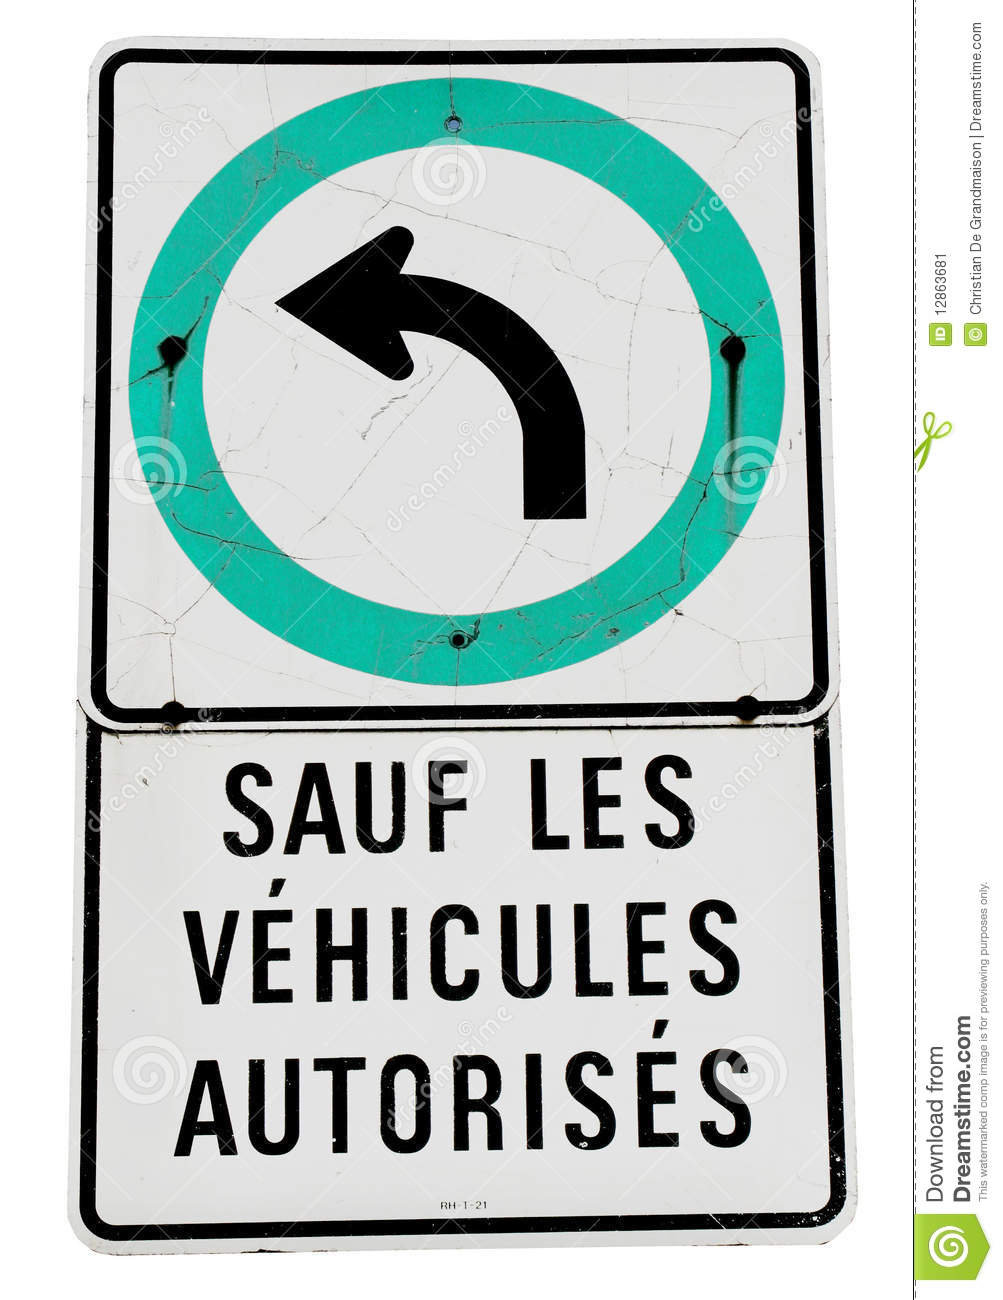 Only authorized vehicles sign